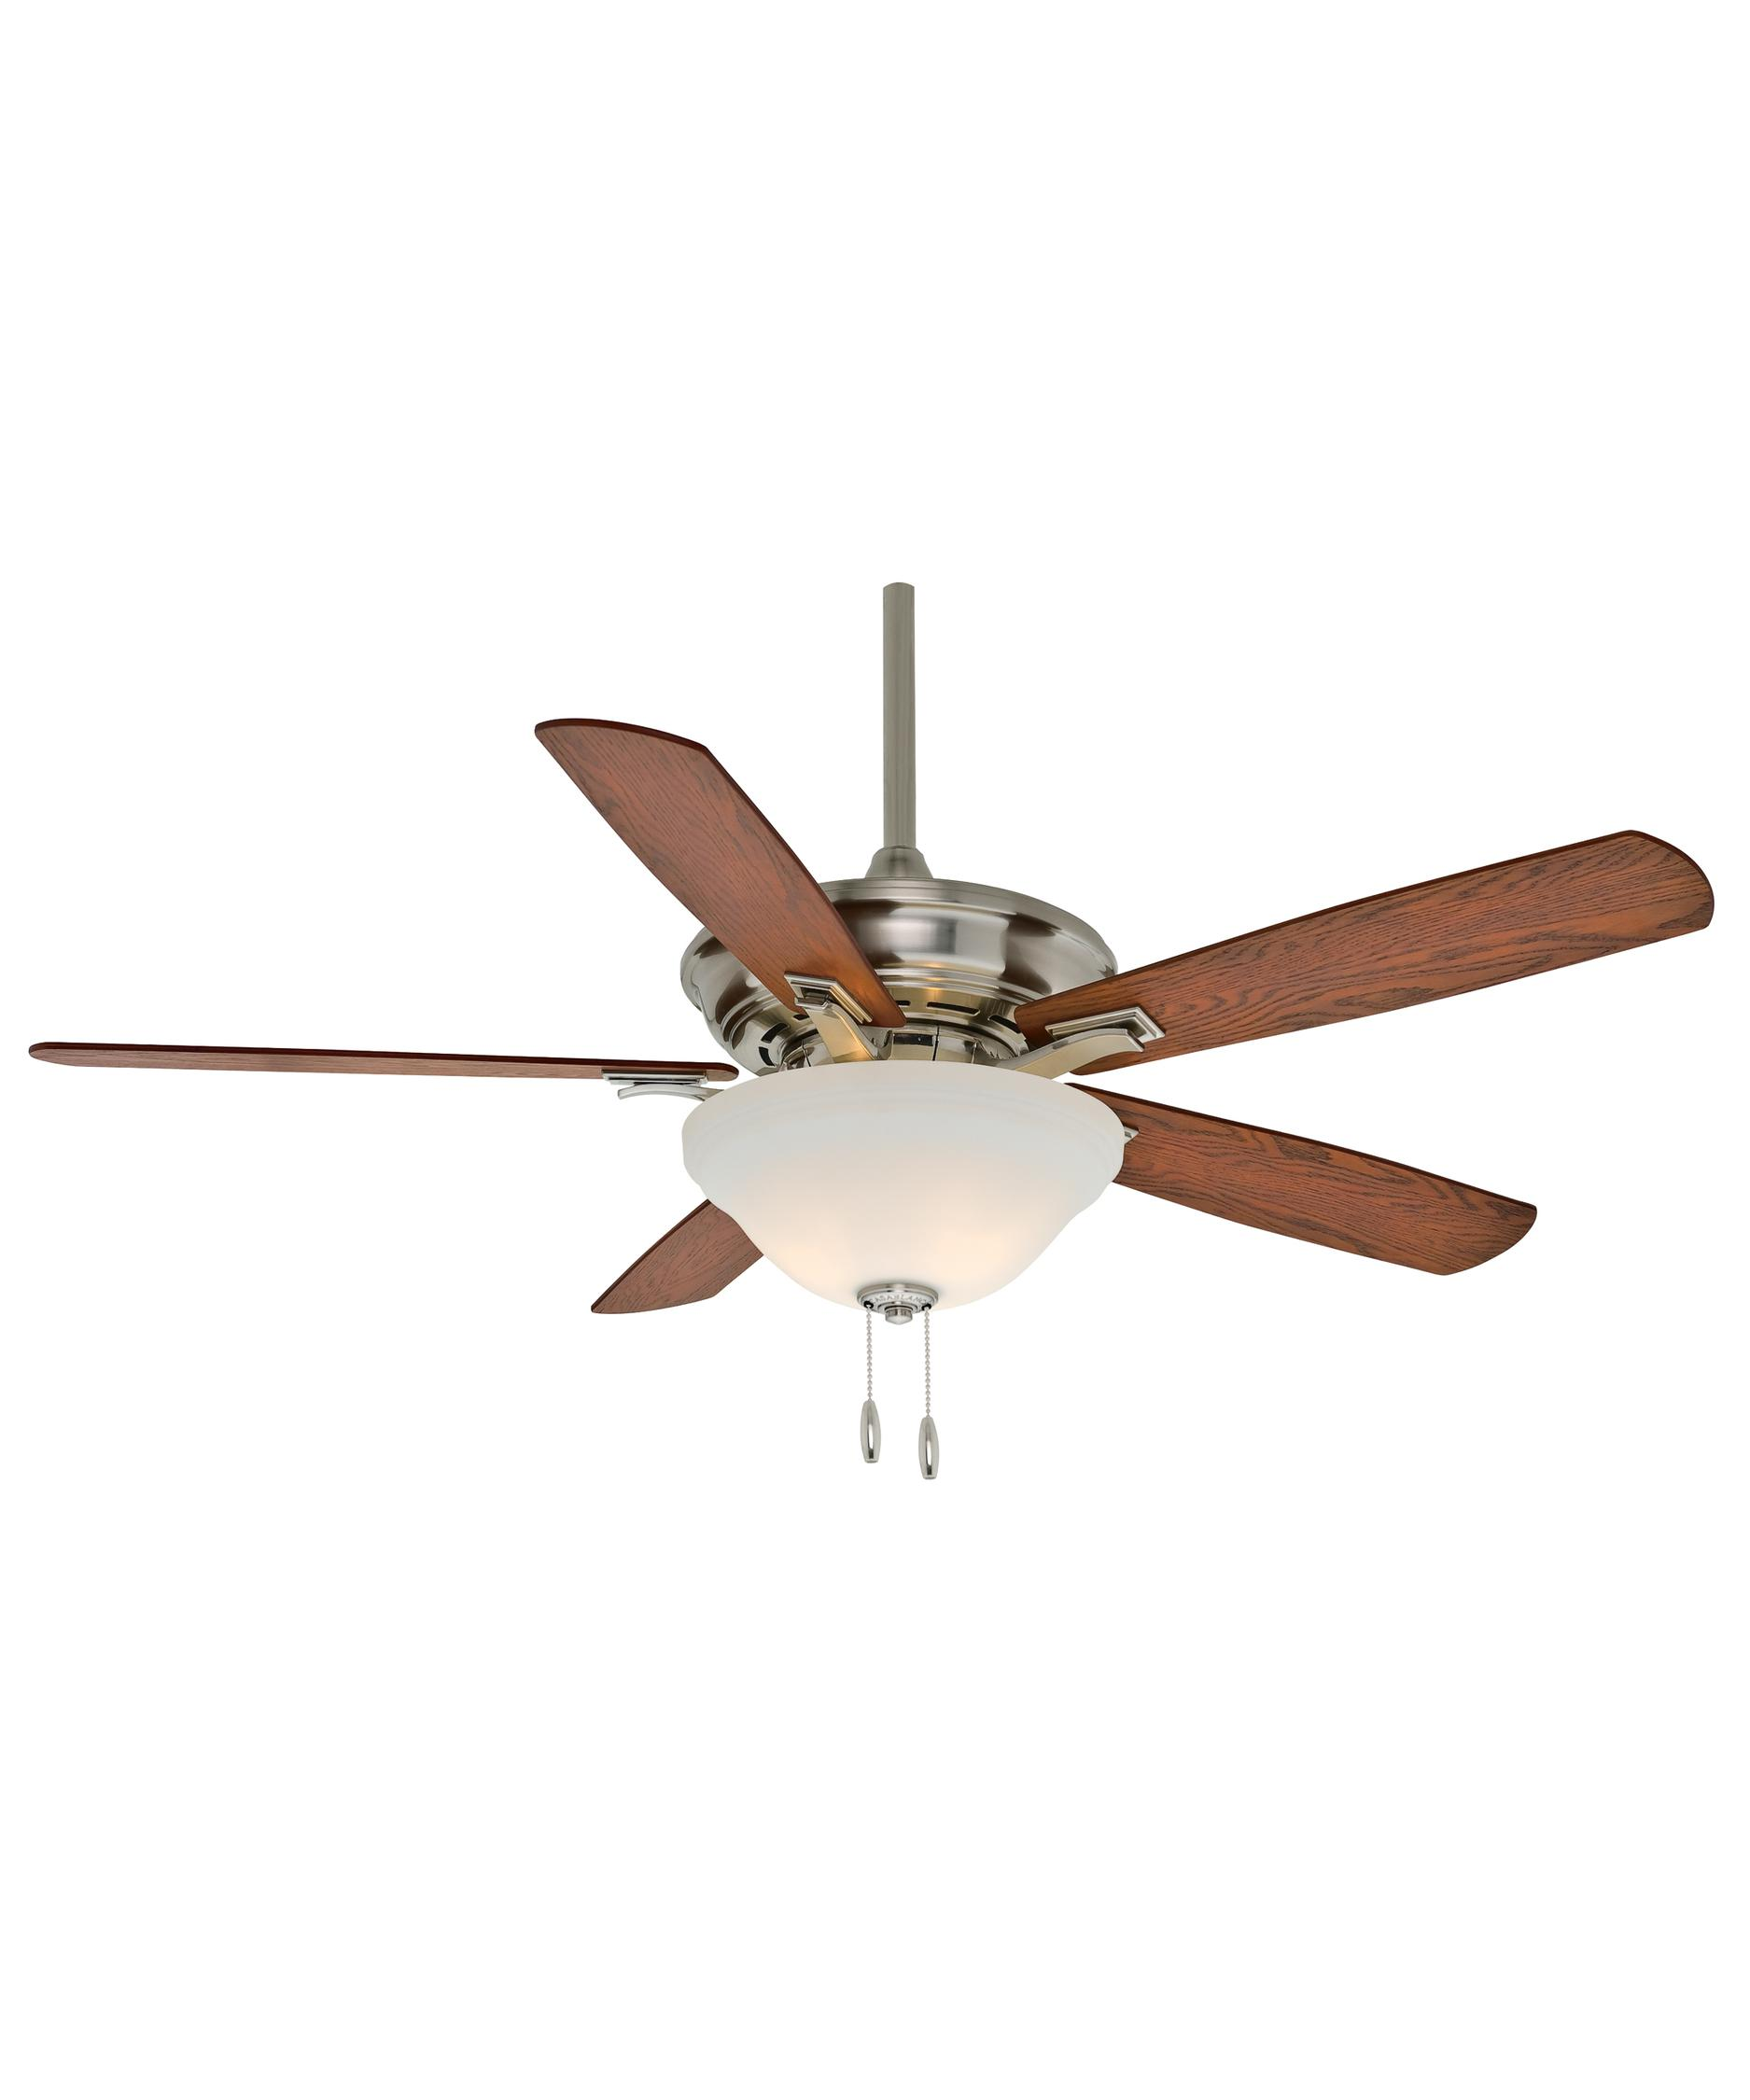 Murray Feiss Ceiling Fan Light Kit: Casablanca 54081 Academy Gallery 54 Inch Ceiling Fan With